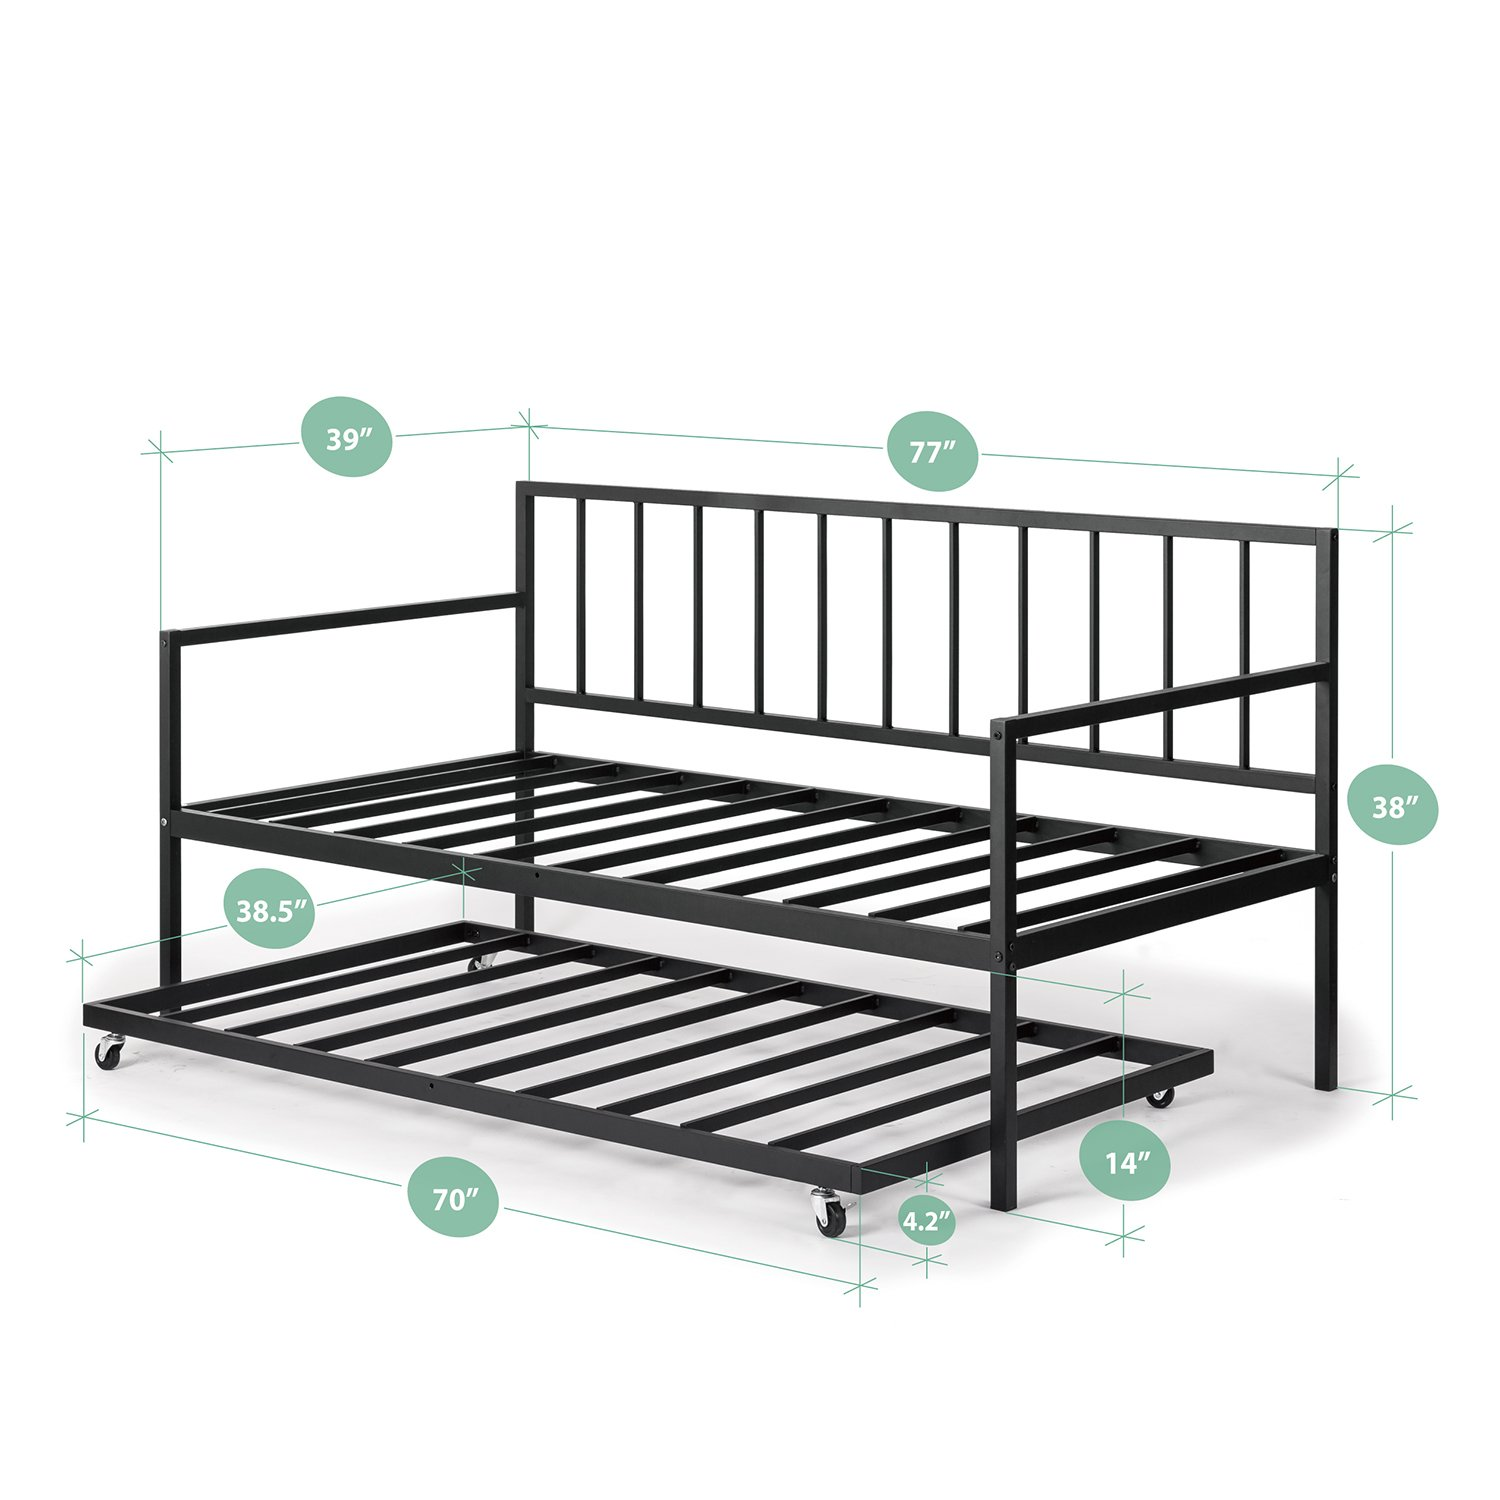 Zinus Eden Twin Daybed and Trundle Set / Premium Steel Slat Support / Daybed and Roll Out Trundle Accommodate Twin Size Mattresses Sold Separately by Zinus (Image #2)